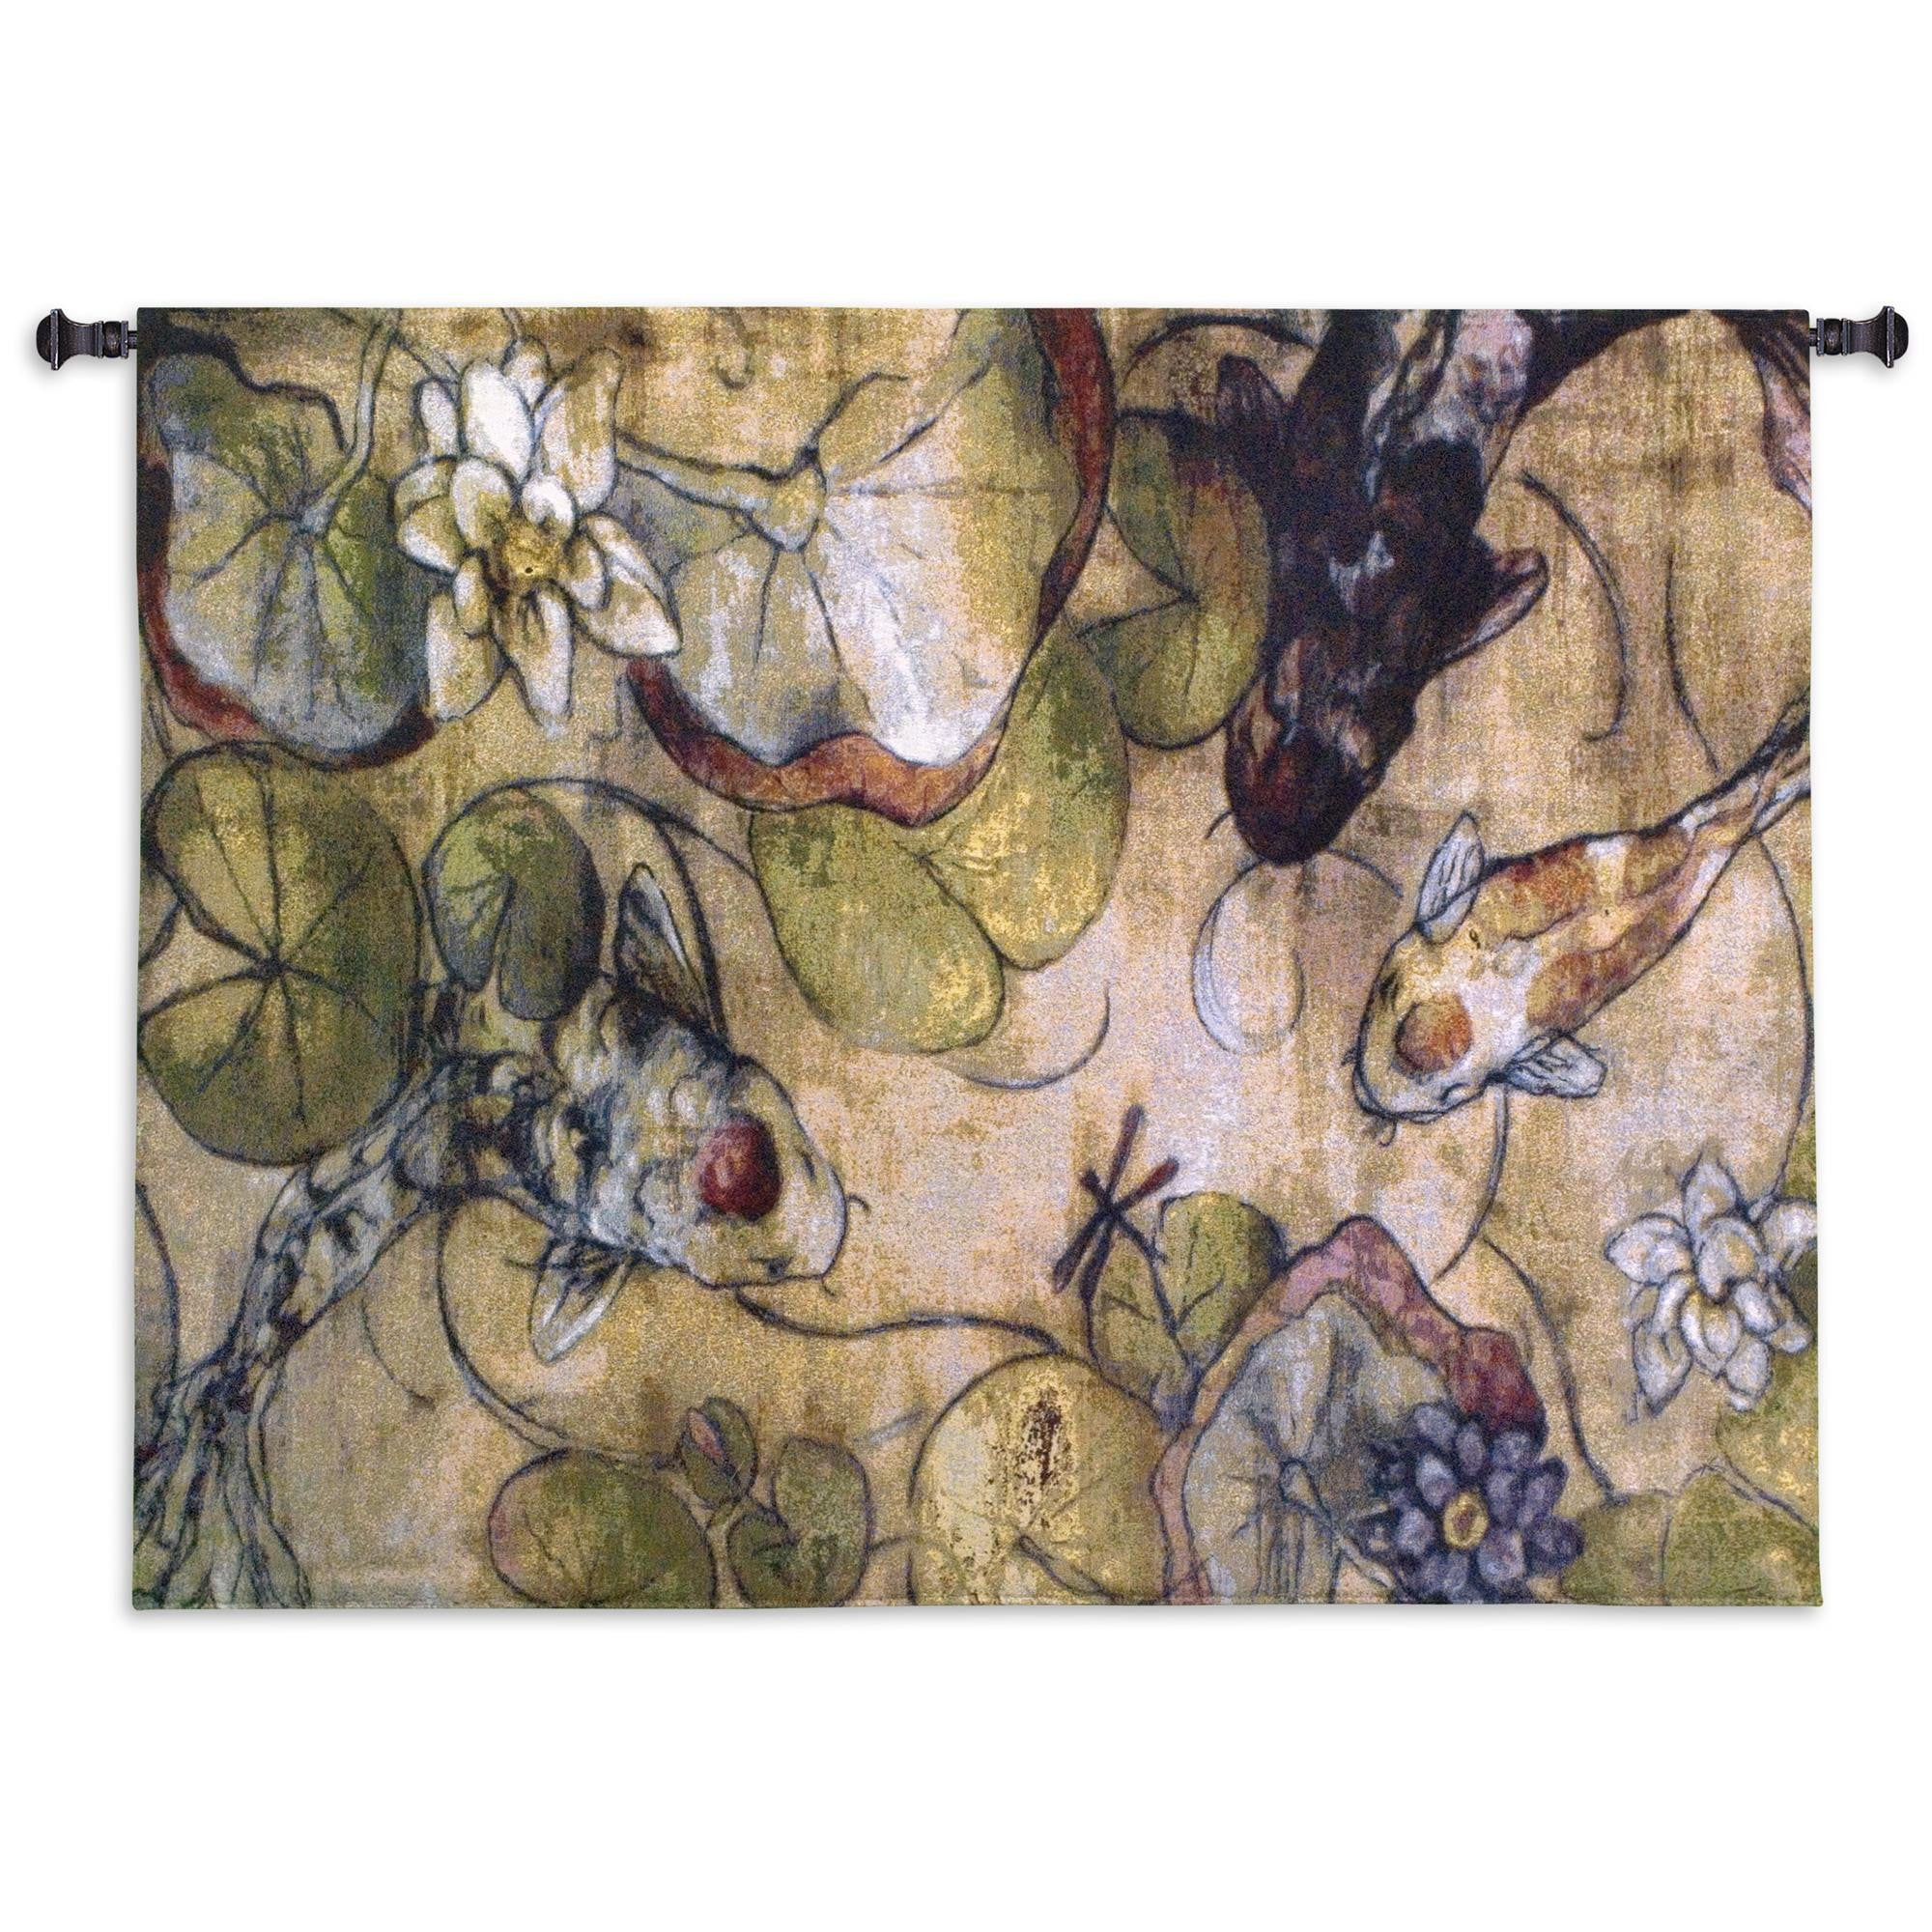 Koi Fish The Meeting Woven Tapestry